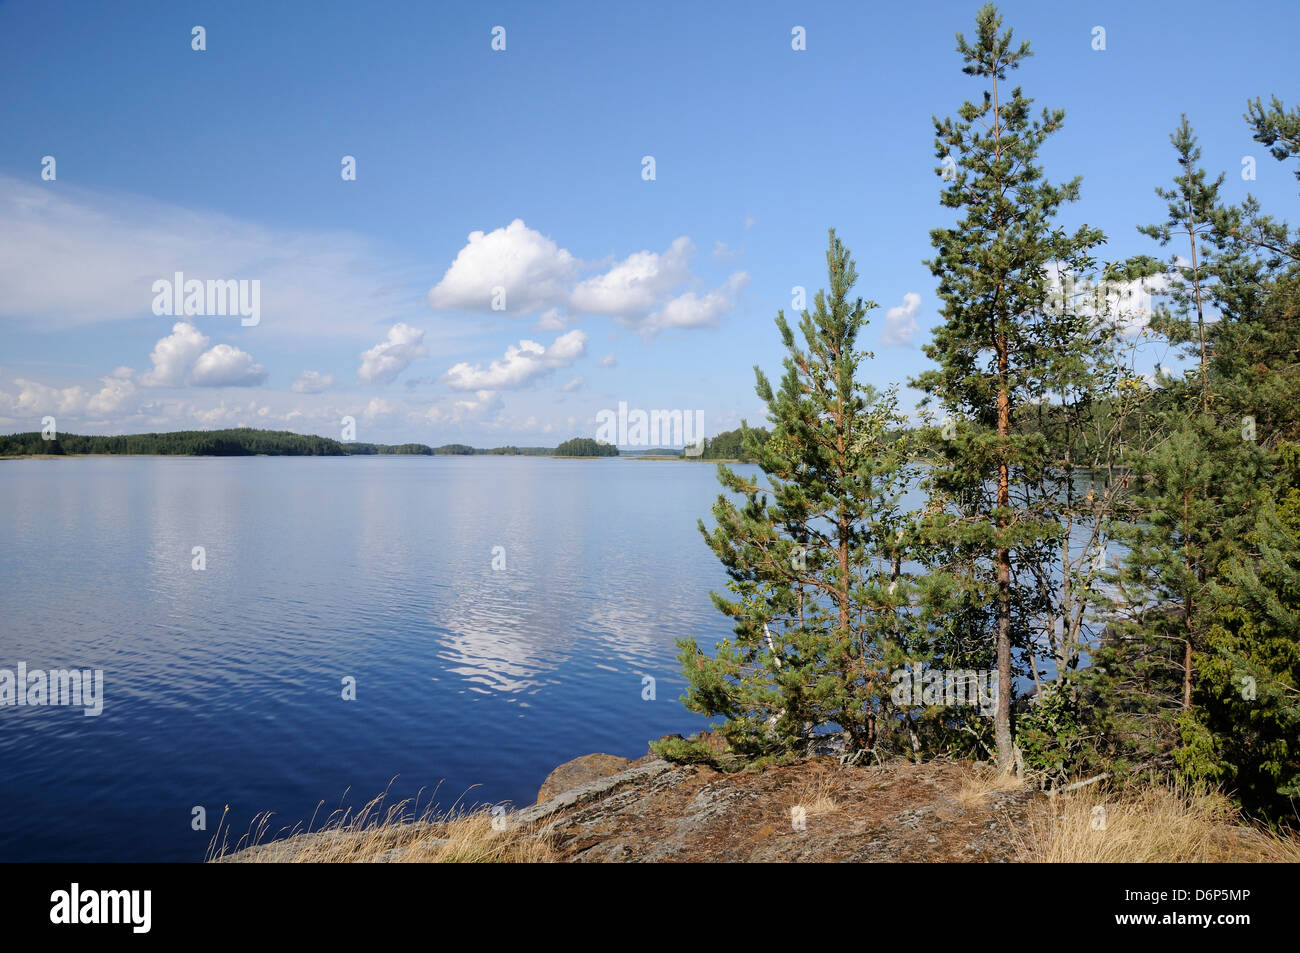 Young Scots pine trees (Pinus sylvestris) growing near rocky shore of Lake Saimaa, near Savonlinna, Finland, Scandinavia, Stock Photo